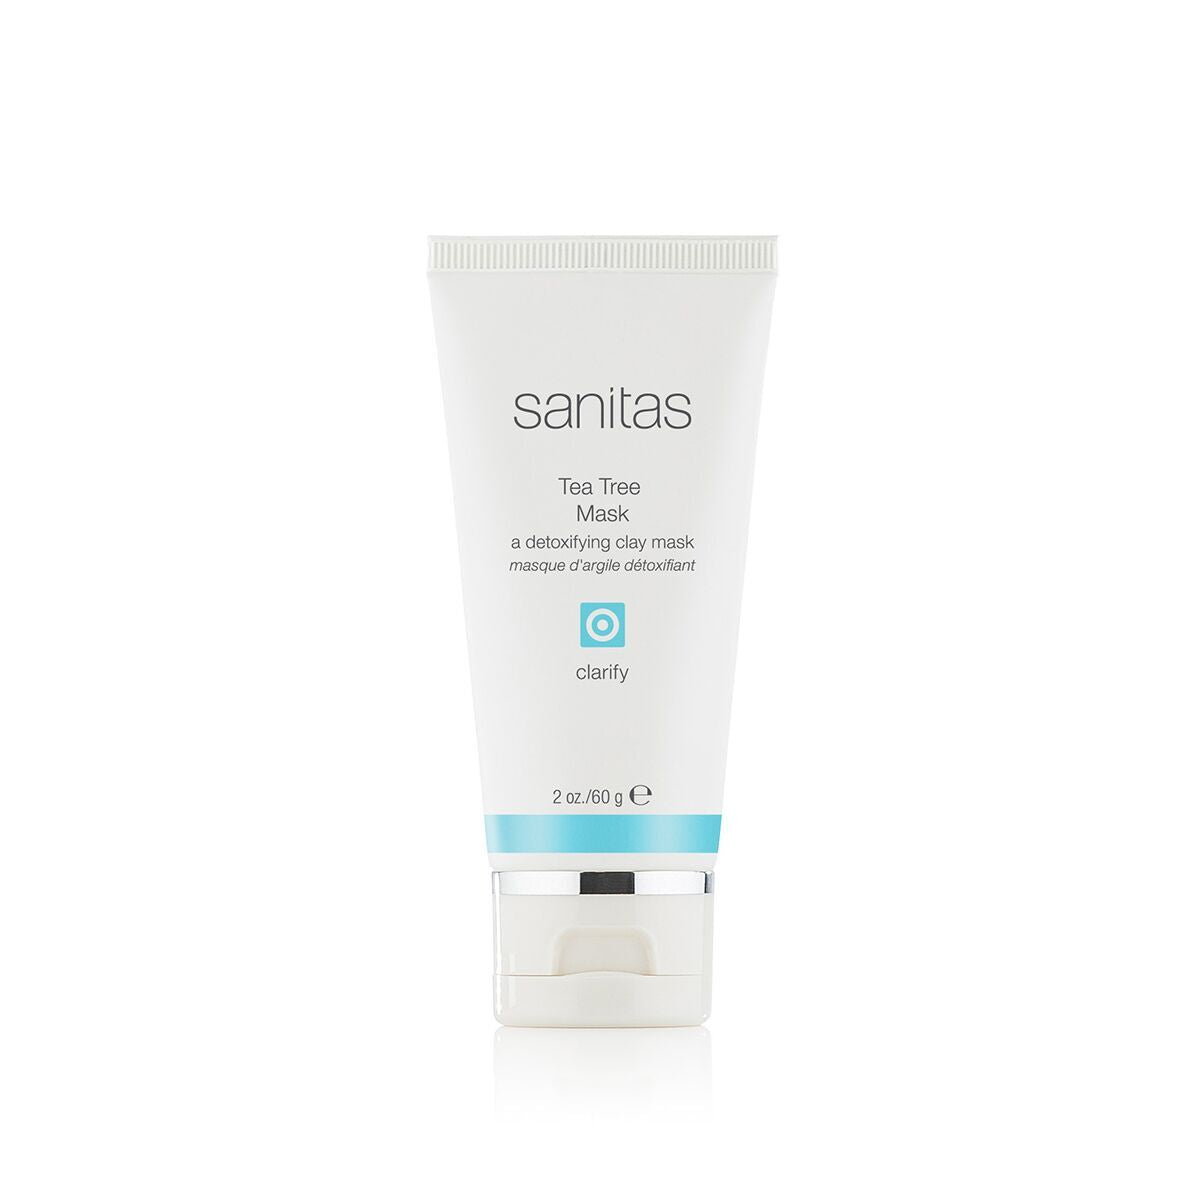 Sanitas Skincare Tea Tree Mask